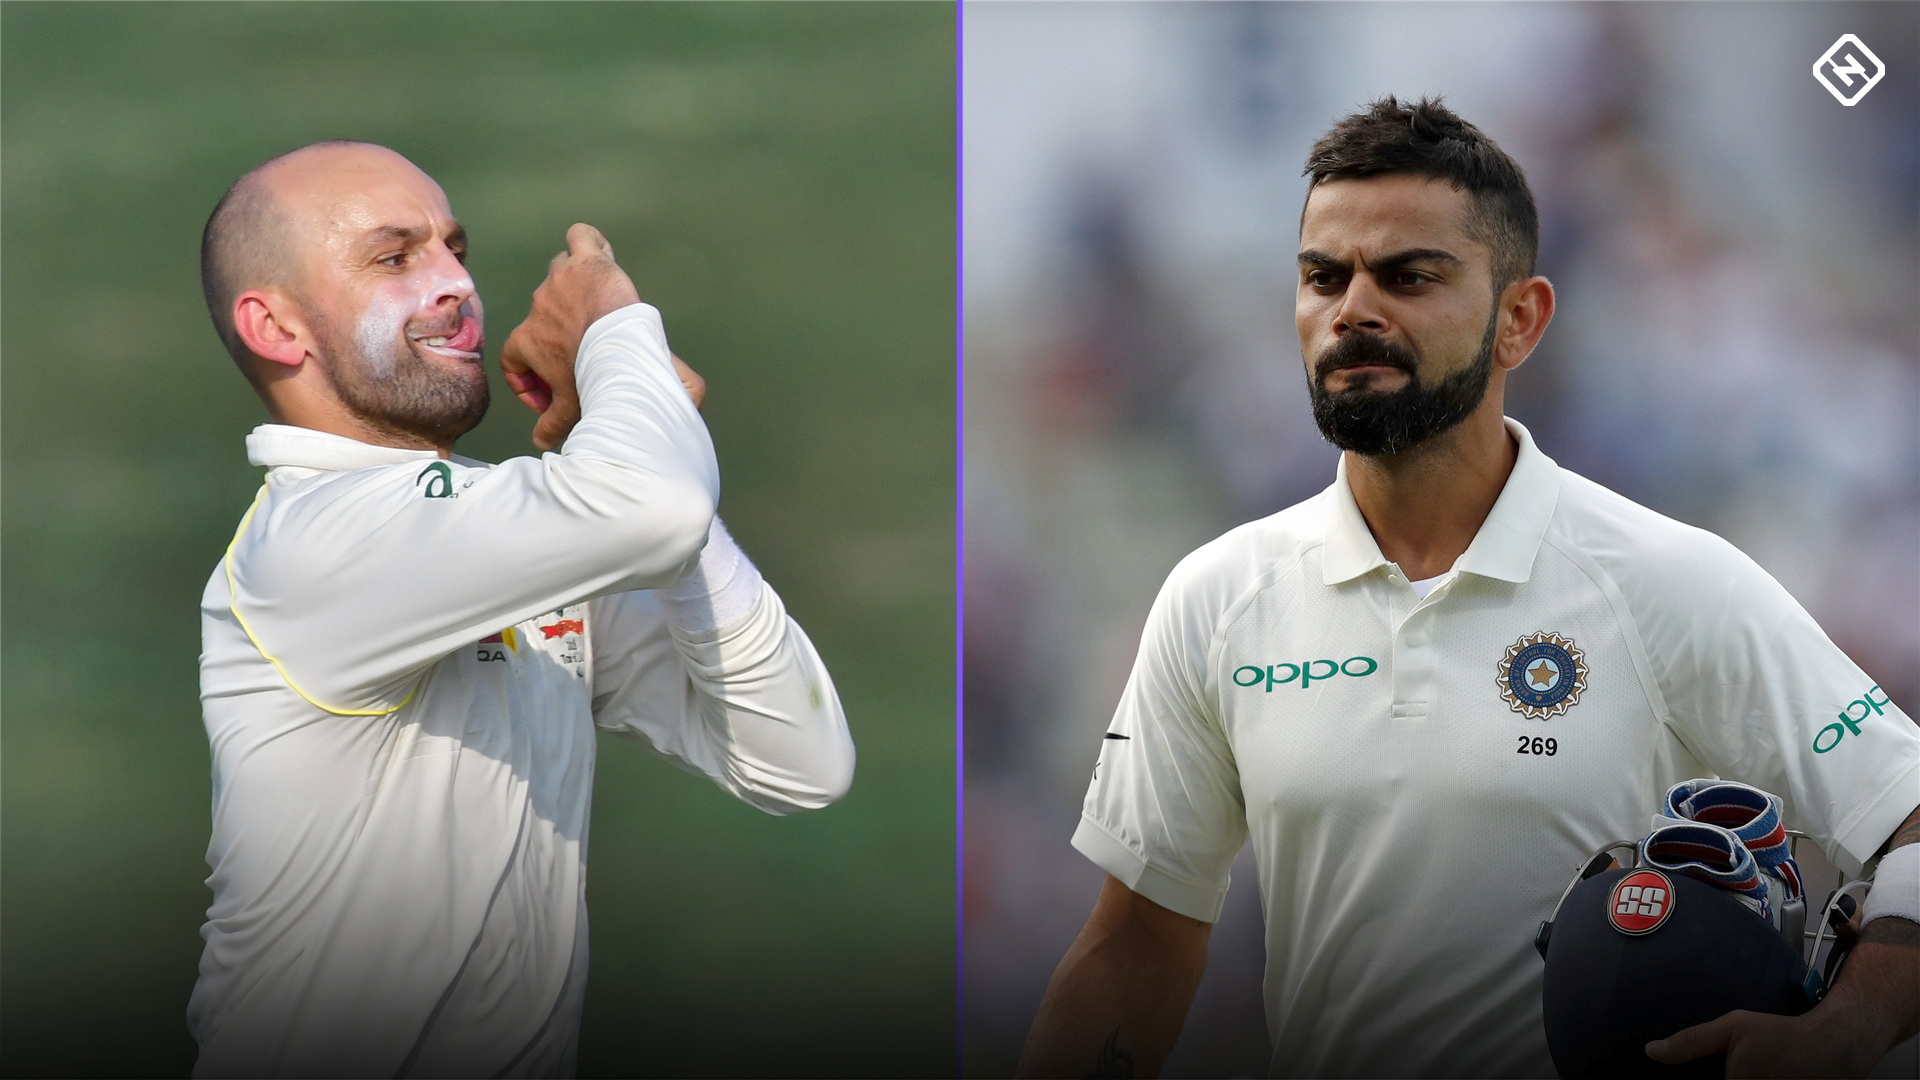 Nathan Lyon breaks record for most Test dismissals of Virat Kohli